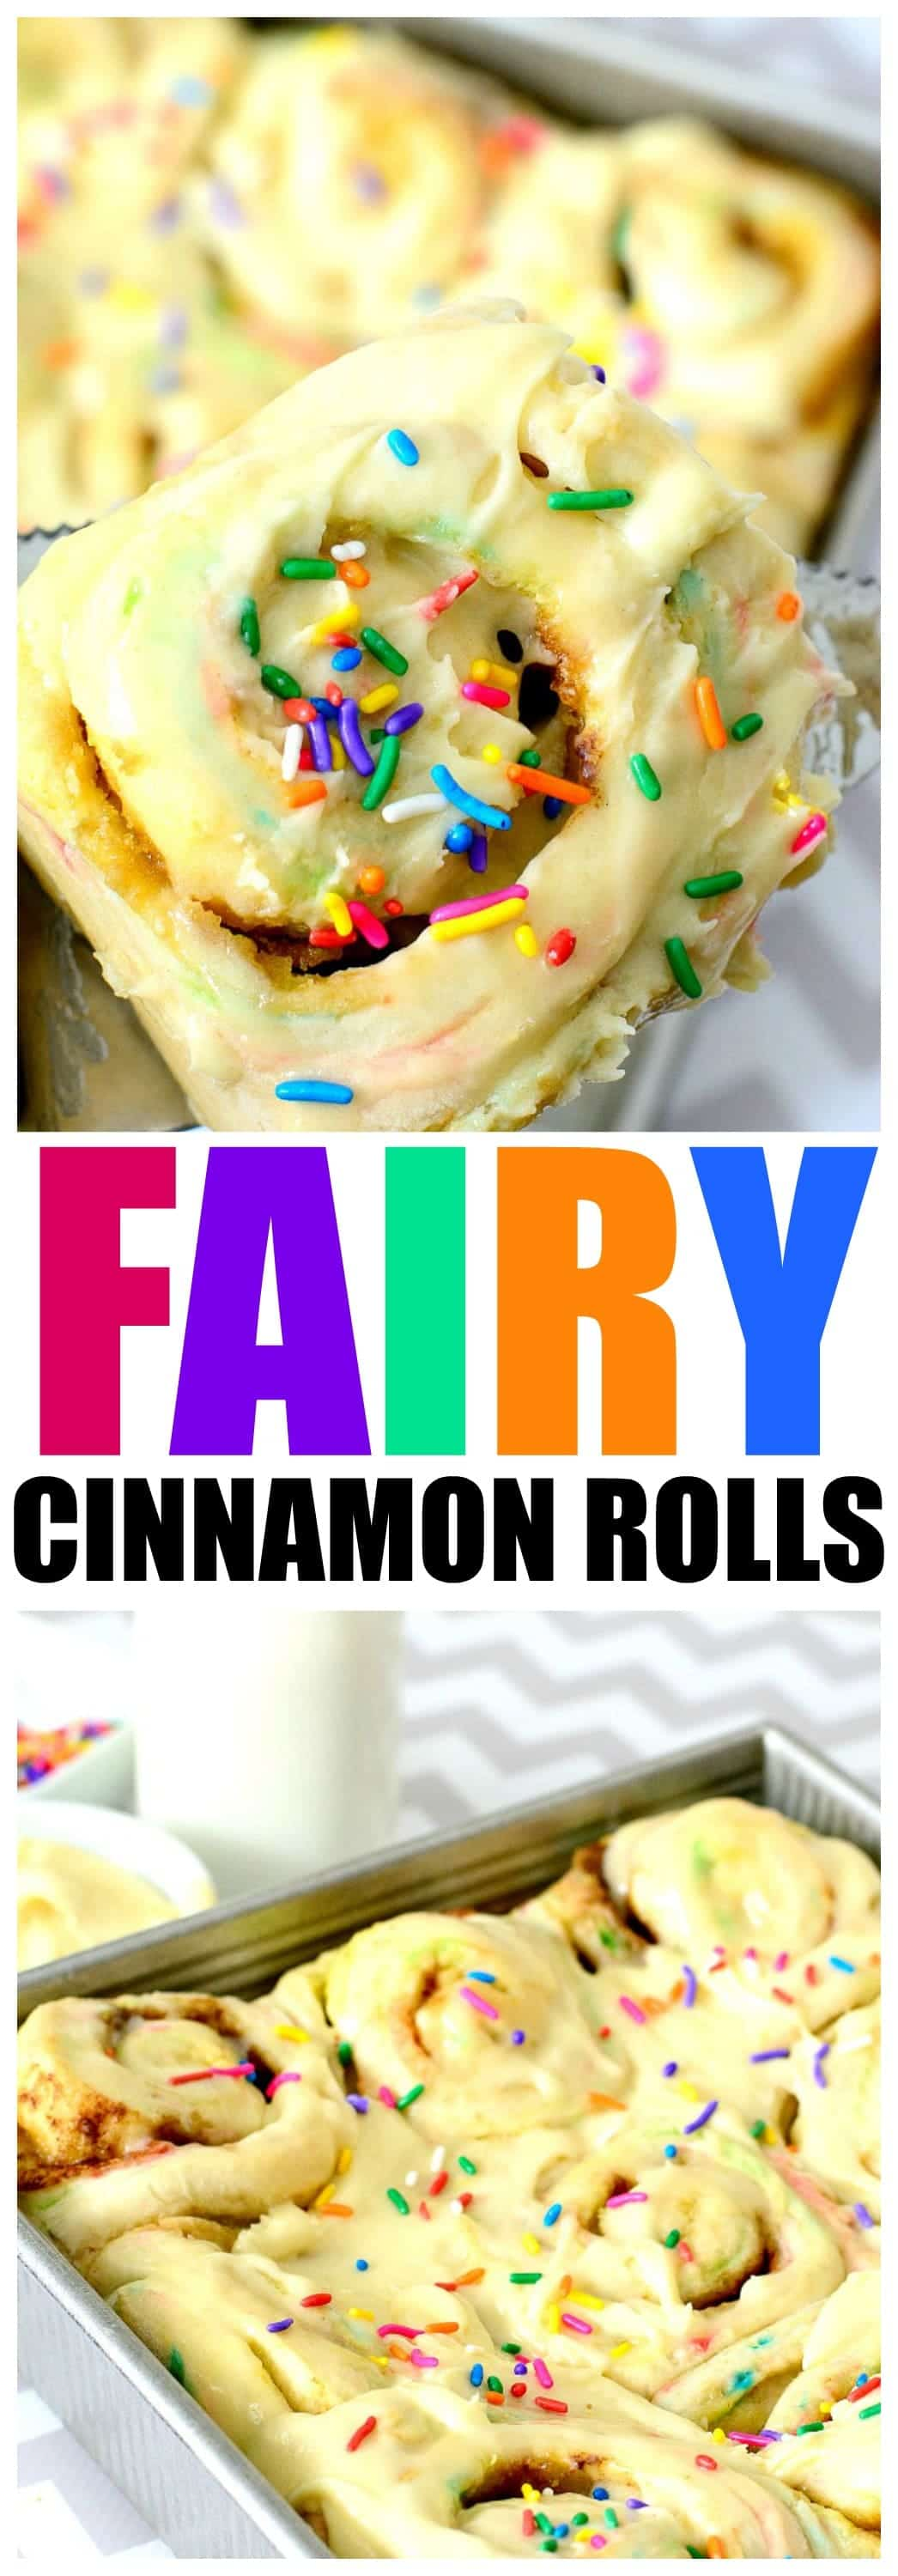 Fairy Cinnamon Roll Recipe: Funfetti Breakfast Roll Recipe for an awesome Birthday Breakfast slathered in delicious Cake Frosting!